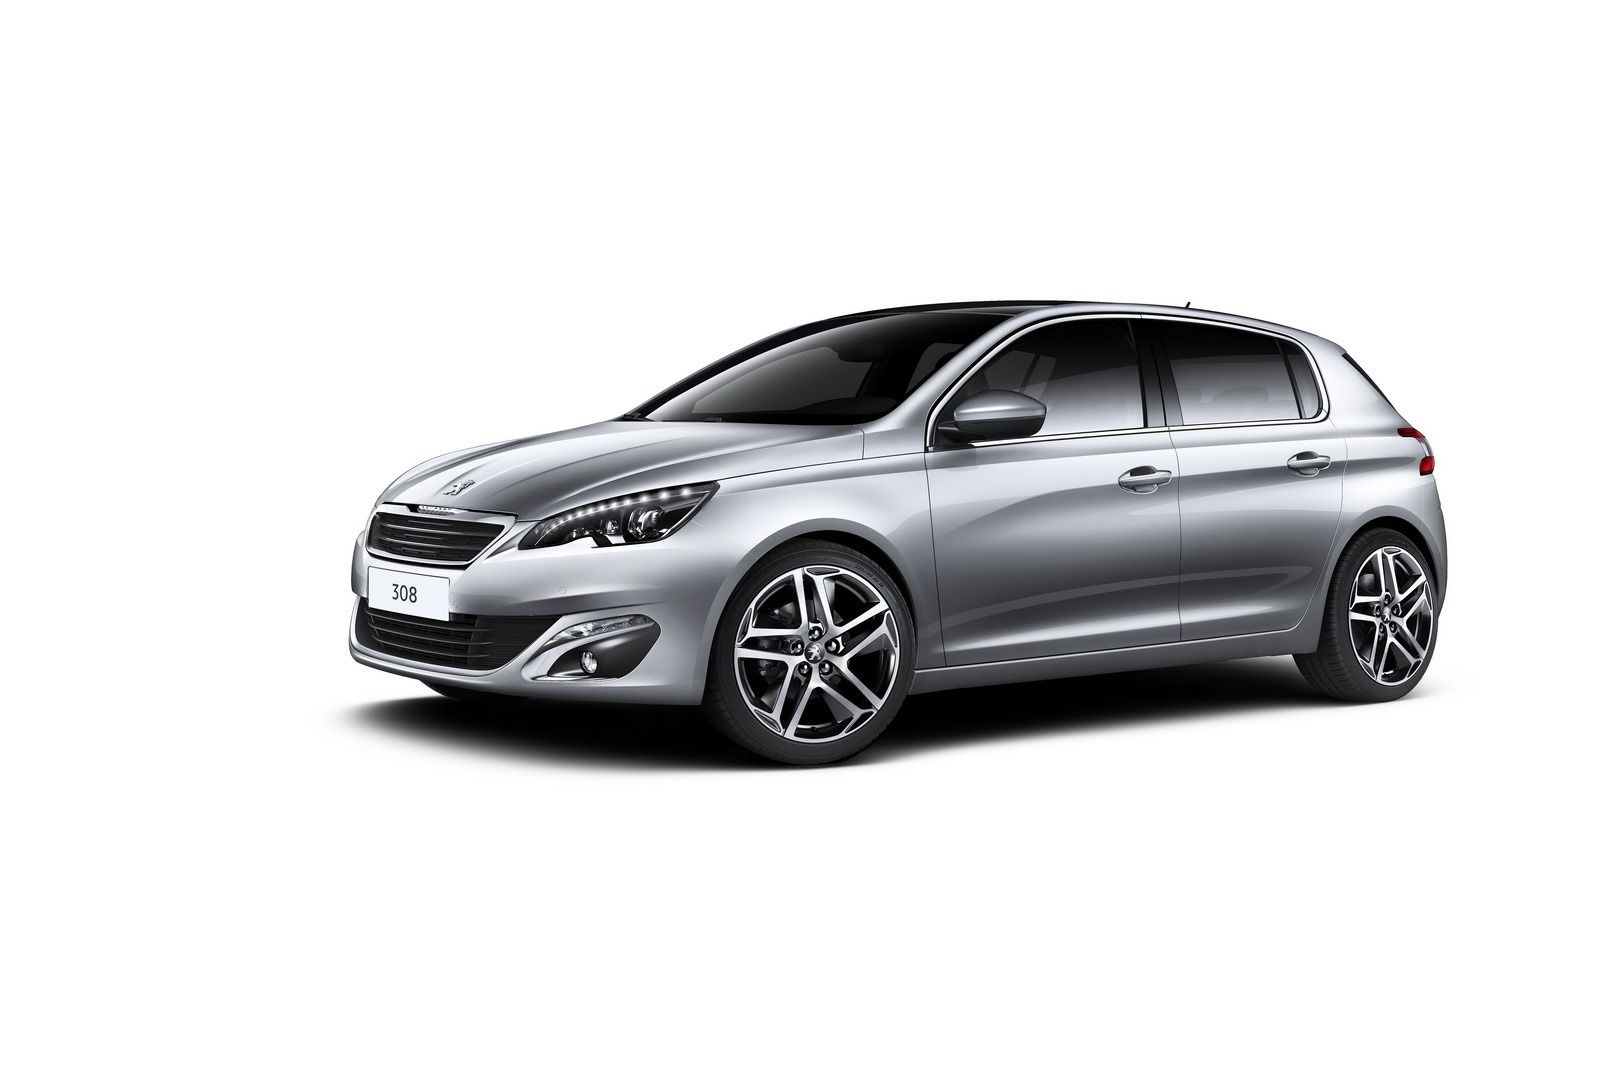 prices for the new peugeot 308 - fcia - french cars in america